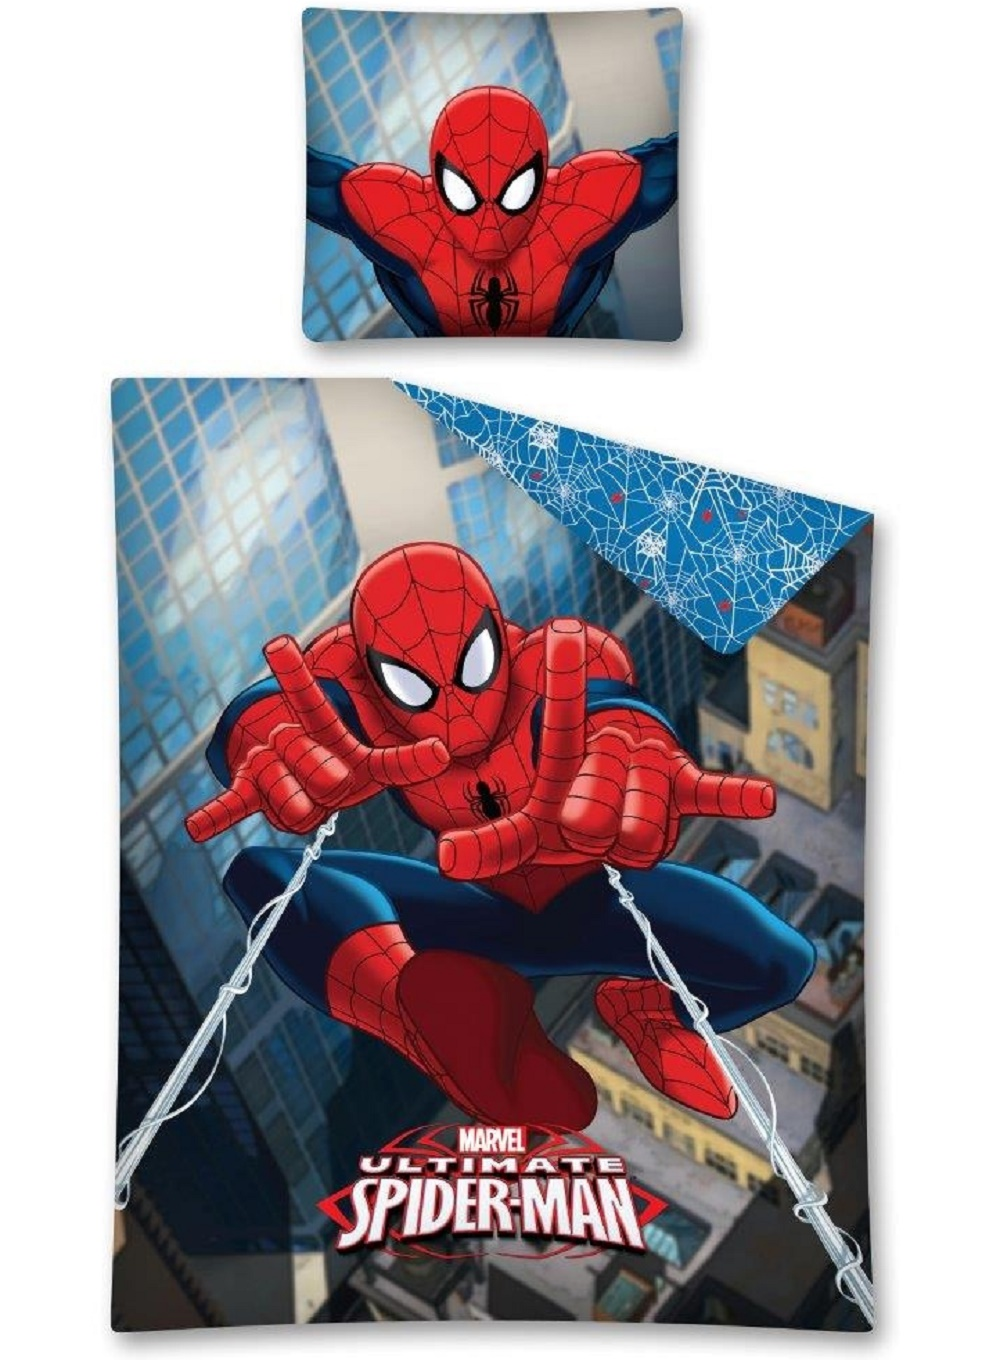 Parure de lit spiderman housse de couette spiderman for Housse couette spiderman